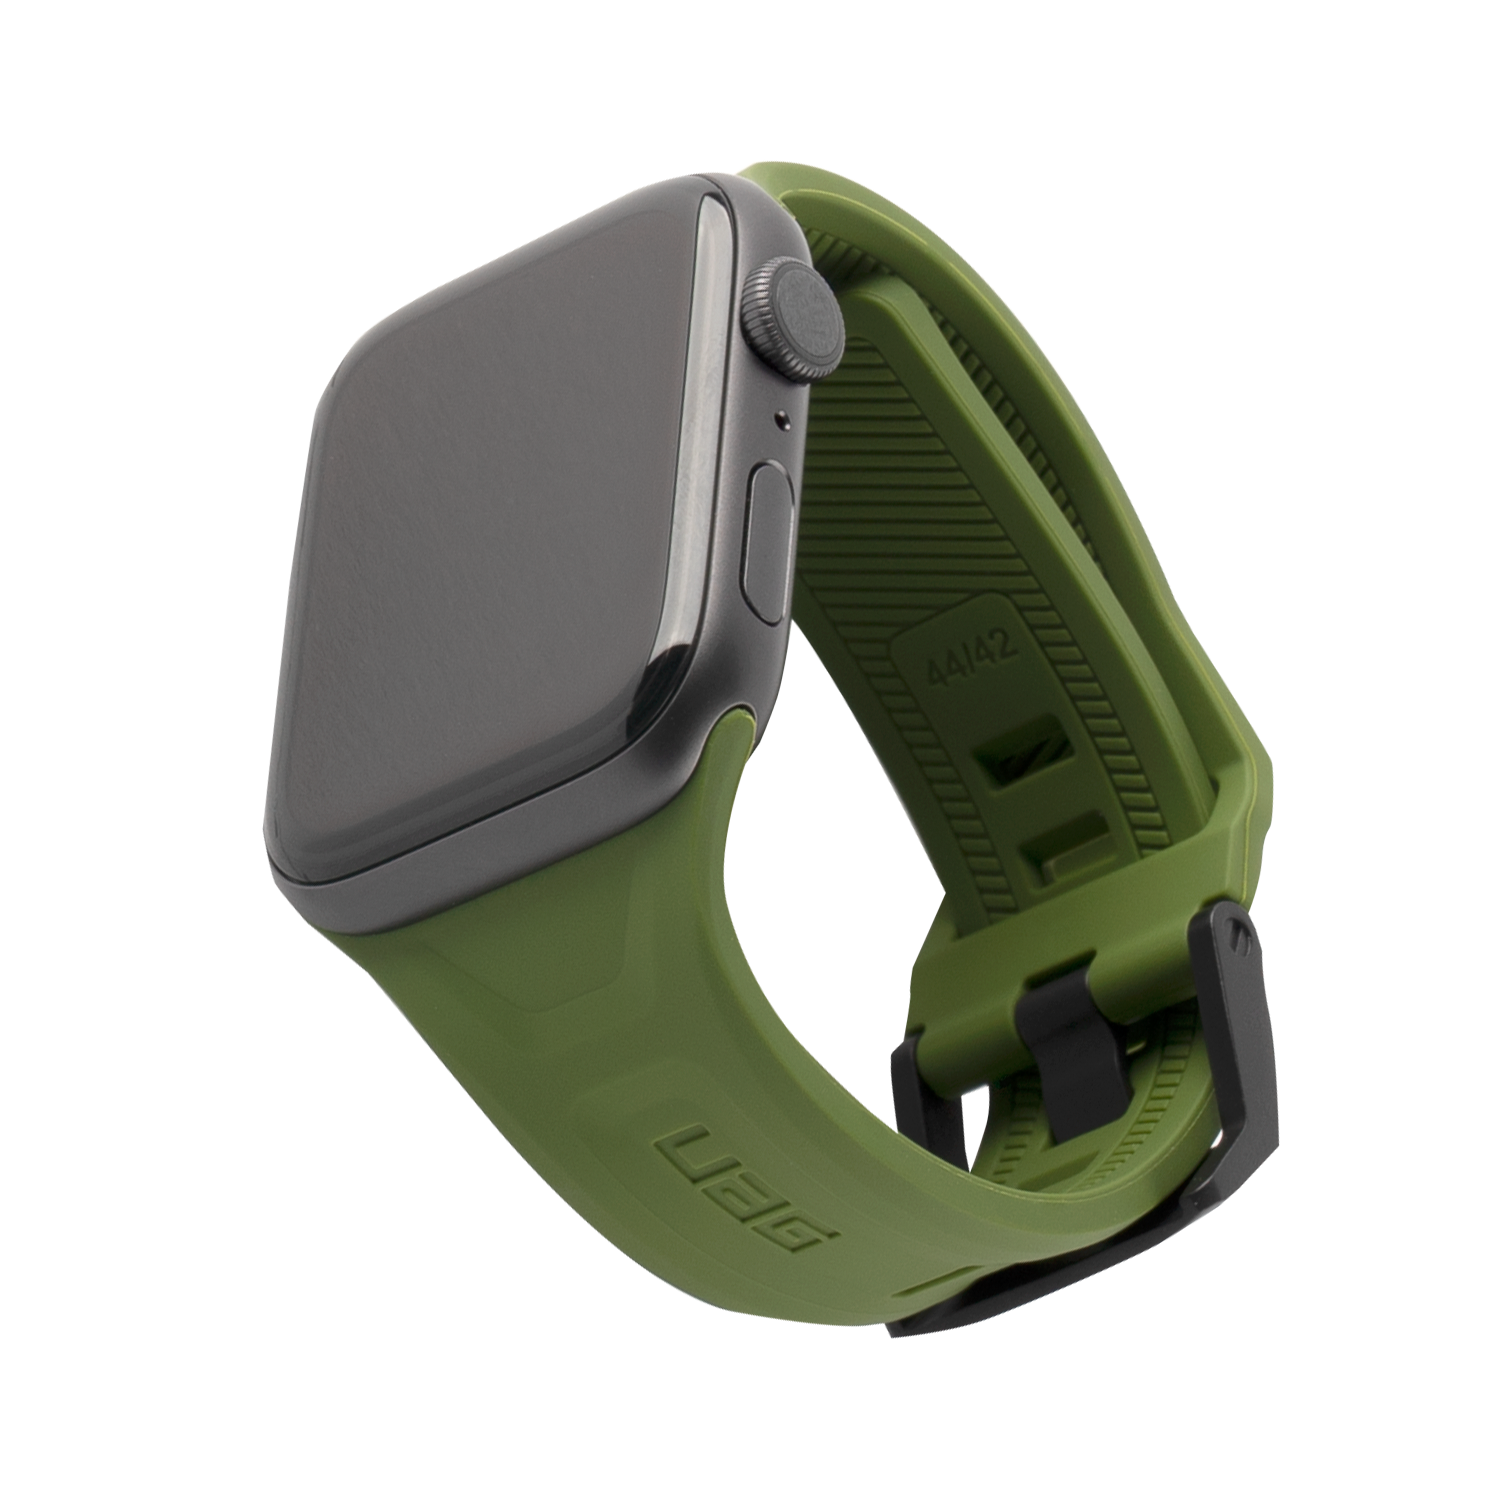 APPLE_WATCH_44mm_SCOUT_OLIVE_VIEW_2.png